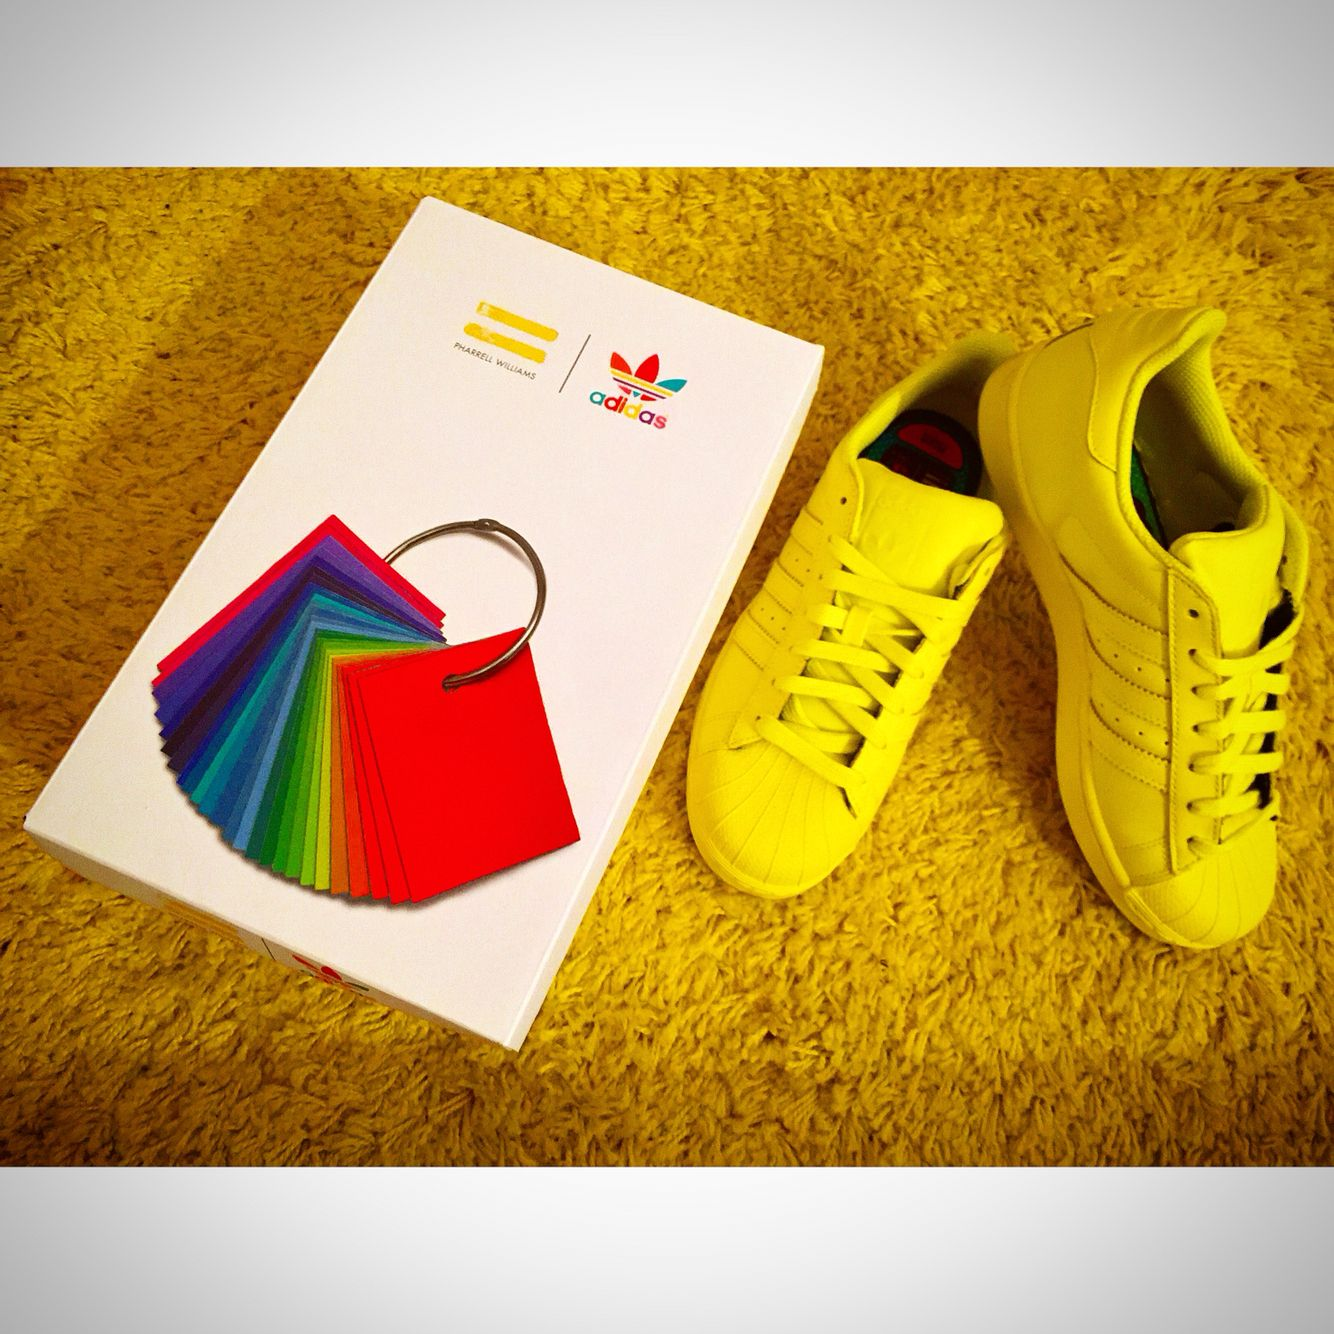 My Gift new Shoes Superstar By @pharrell By @adidasoriginals  #Pharrel_Whilliams #fashion #shoes #superstar #top #style #colors #yellow #FootLocker #socialnetwork #pinterest #tumblr #twitter #instagram #foursquare #pinterest #facebook #swarm #filter #followme #followers #love #photo #by @antonysax